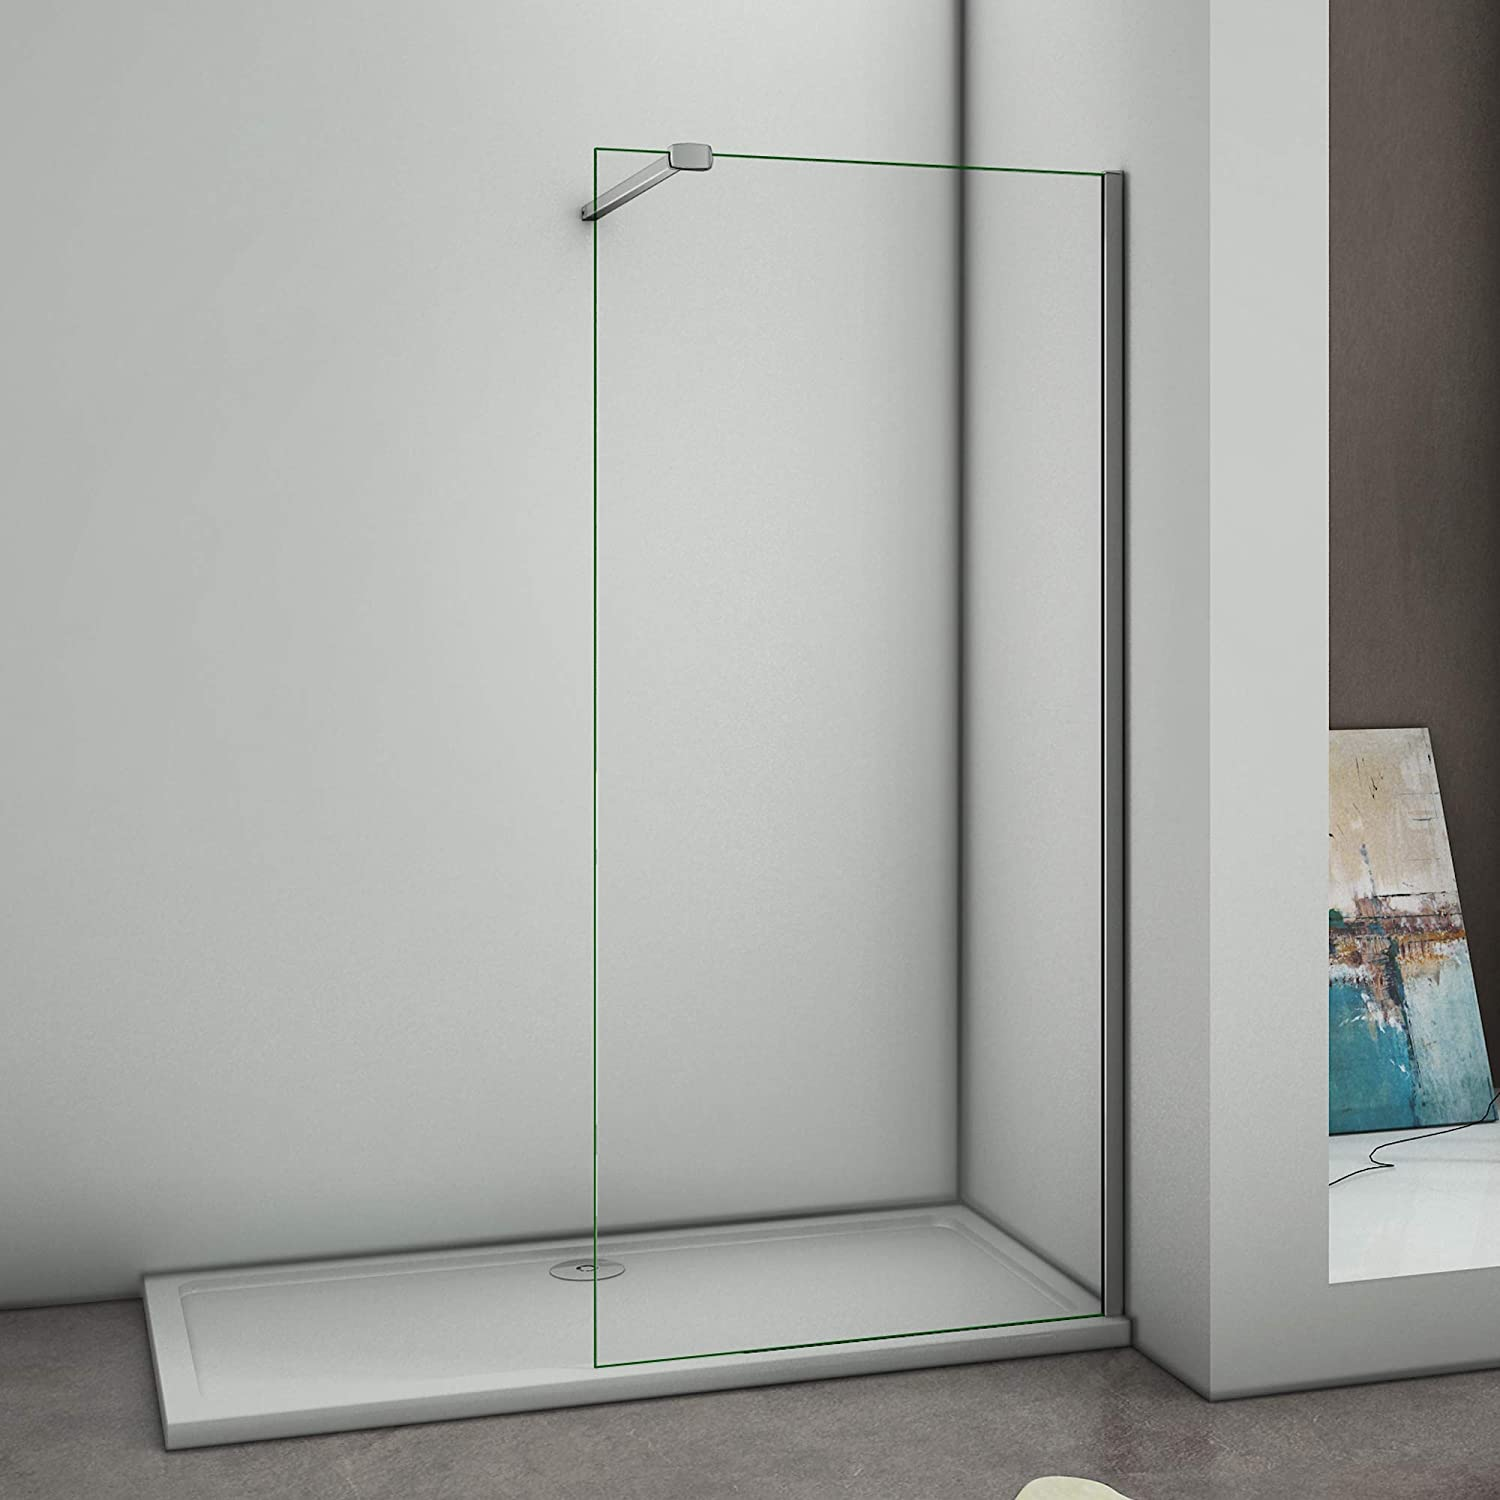 1100x1950mm Walk in Screen Wet Room Shower Enclosure 8mm Easyclean Glass Panel